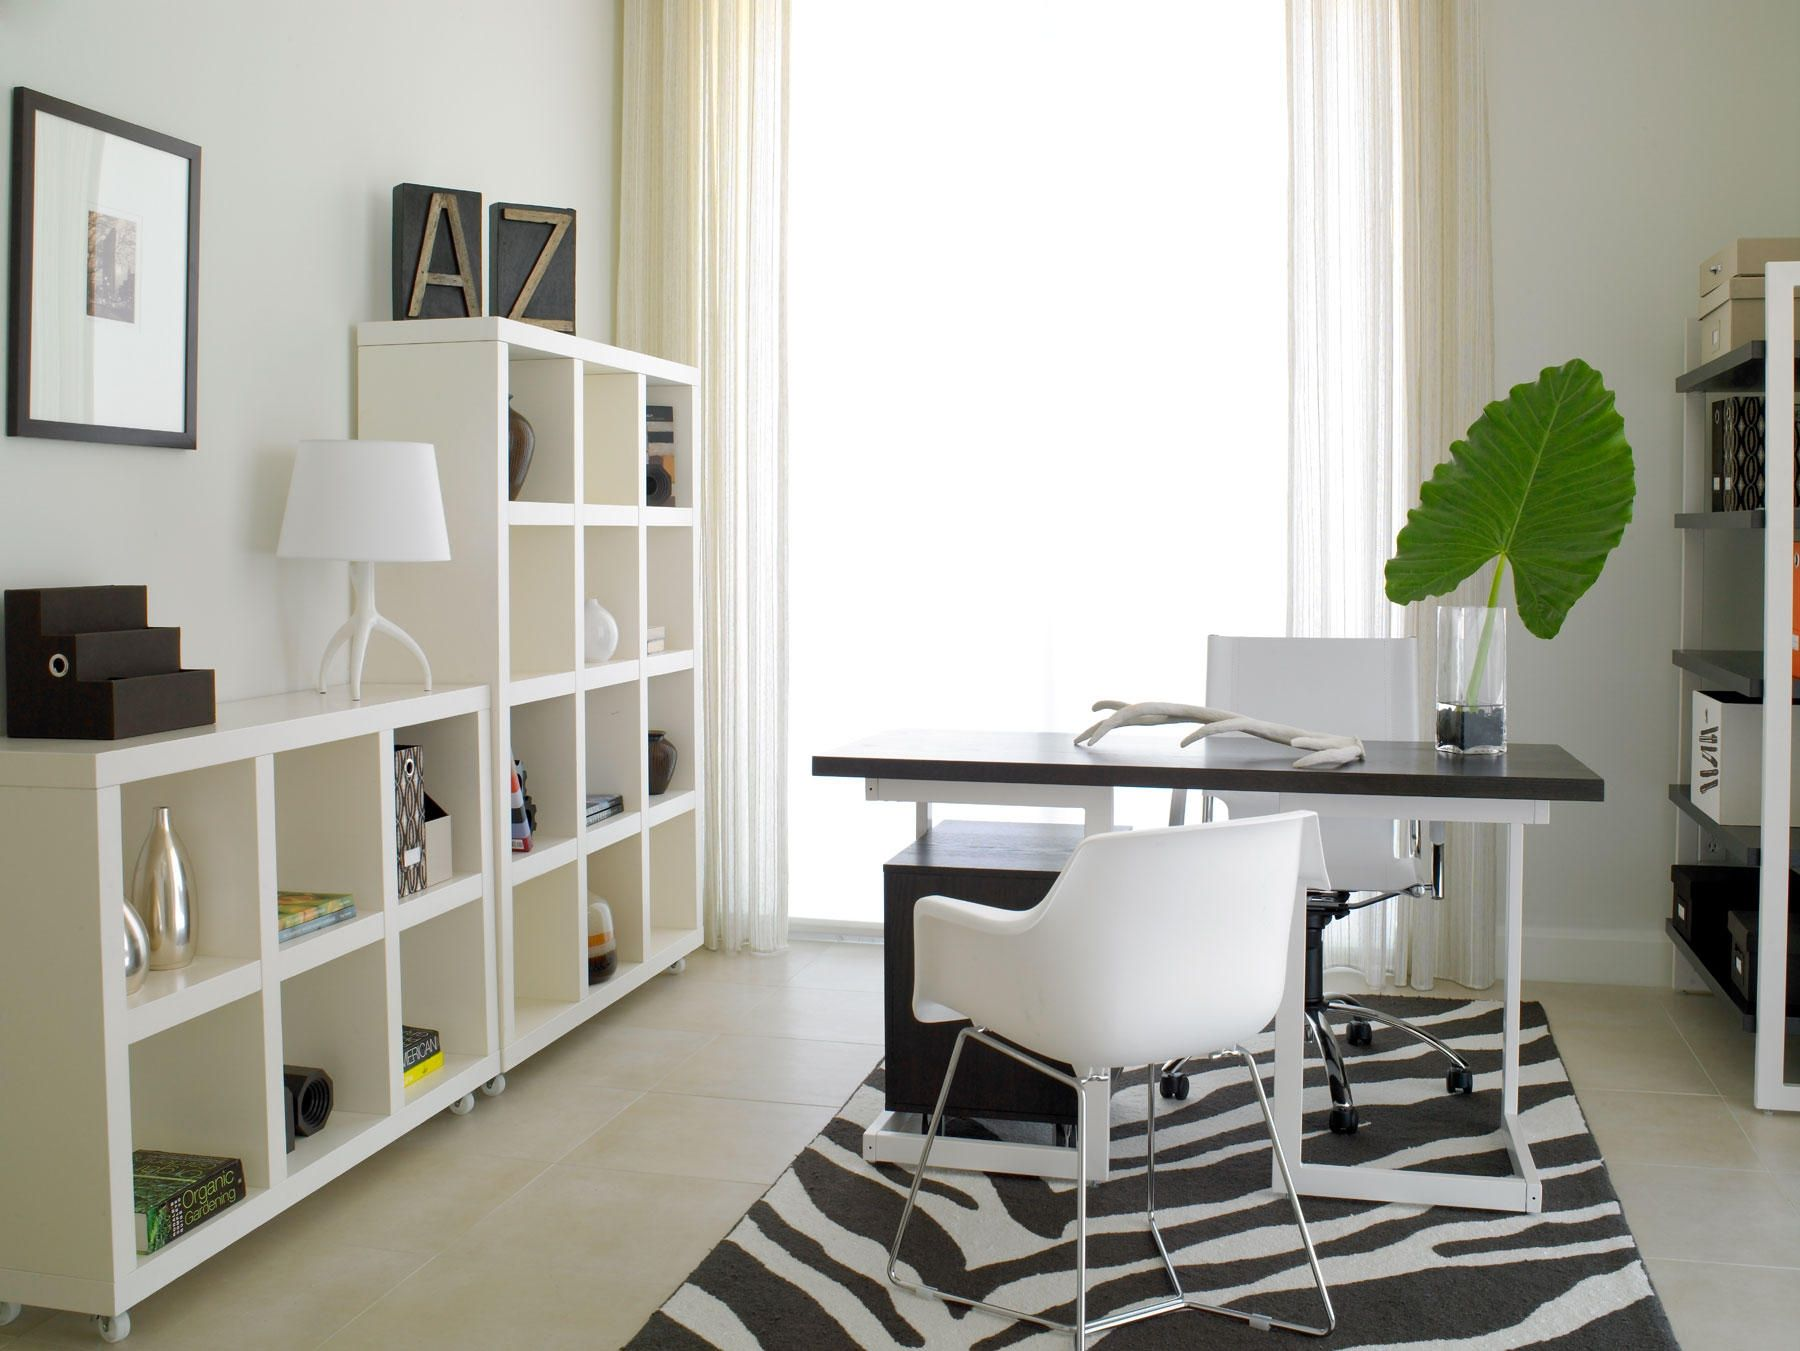 Home offices don\'t need to be drab or boring. Make your office space ...